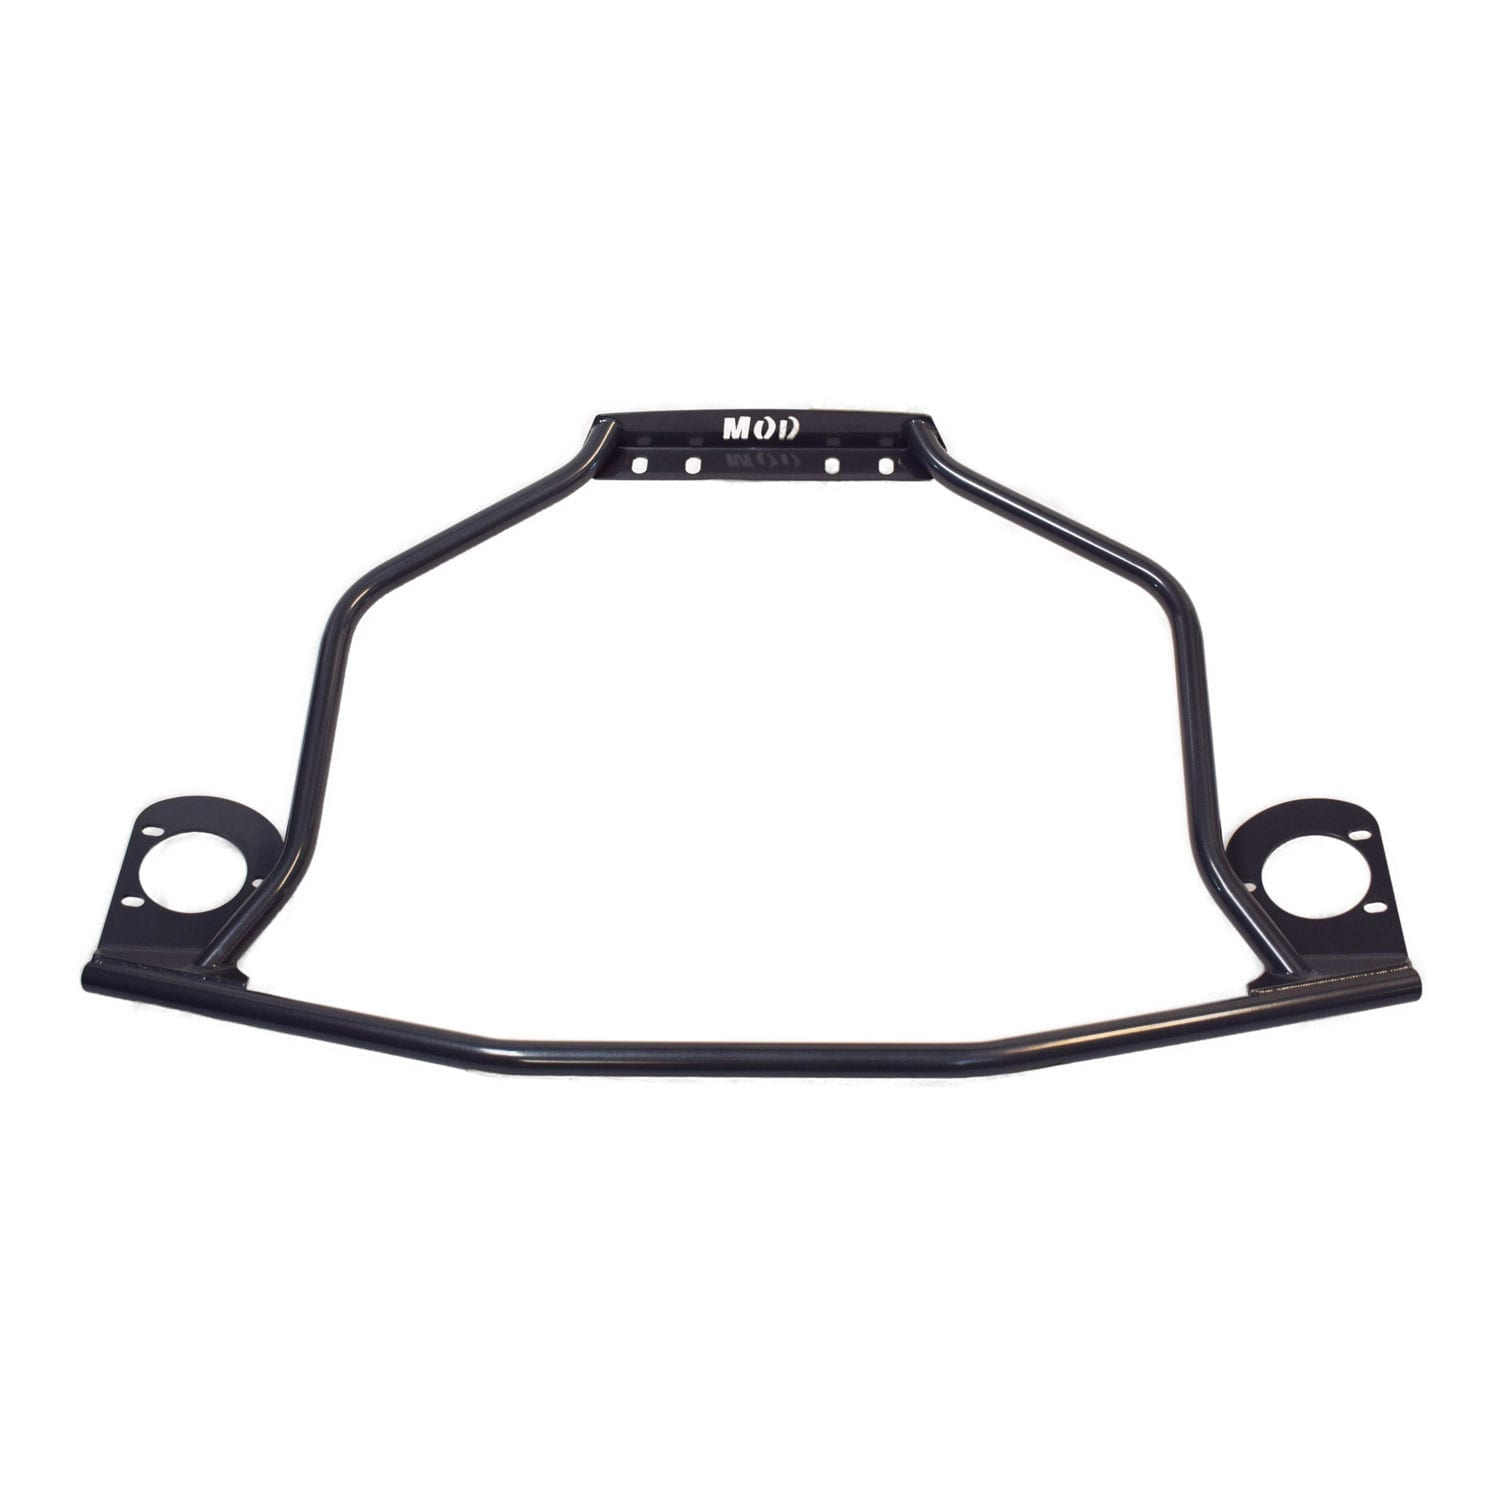 Shock Tower Brace Compatible with 1964-1970 Ford Mustang